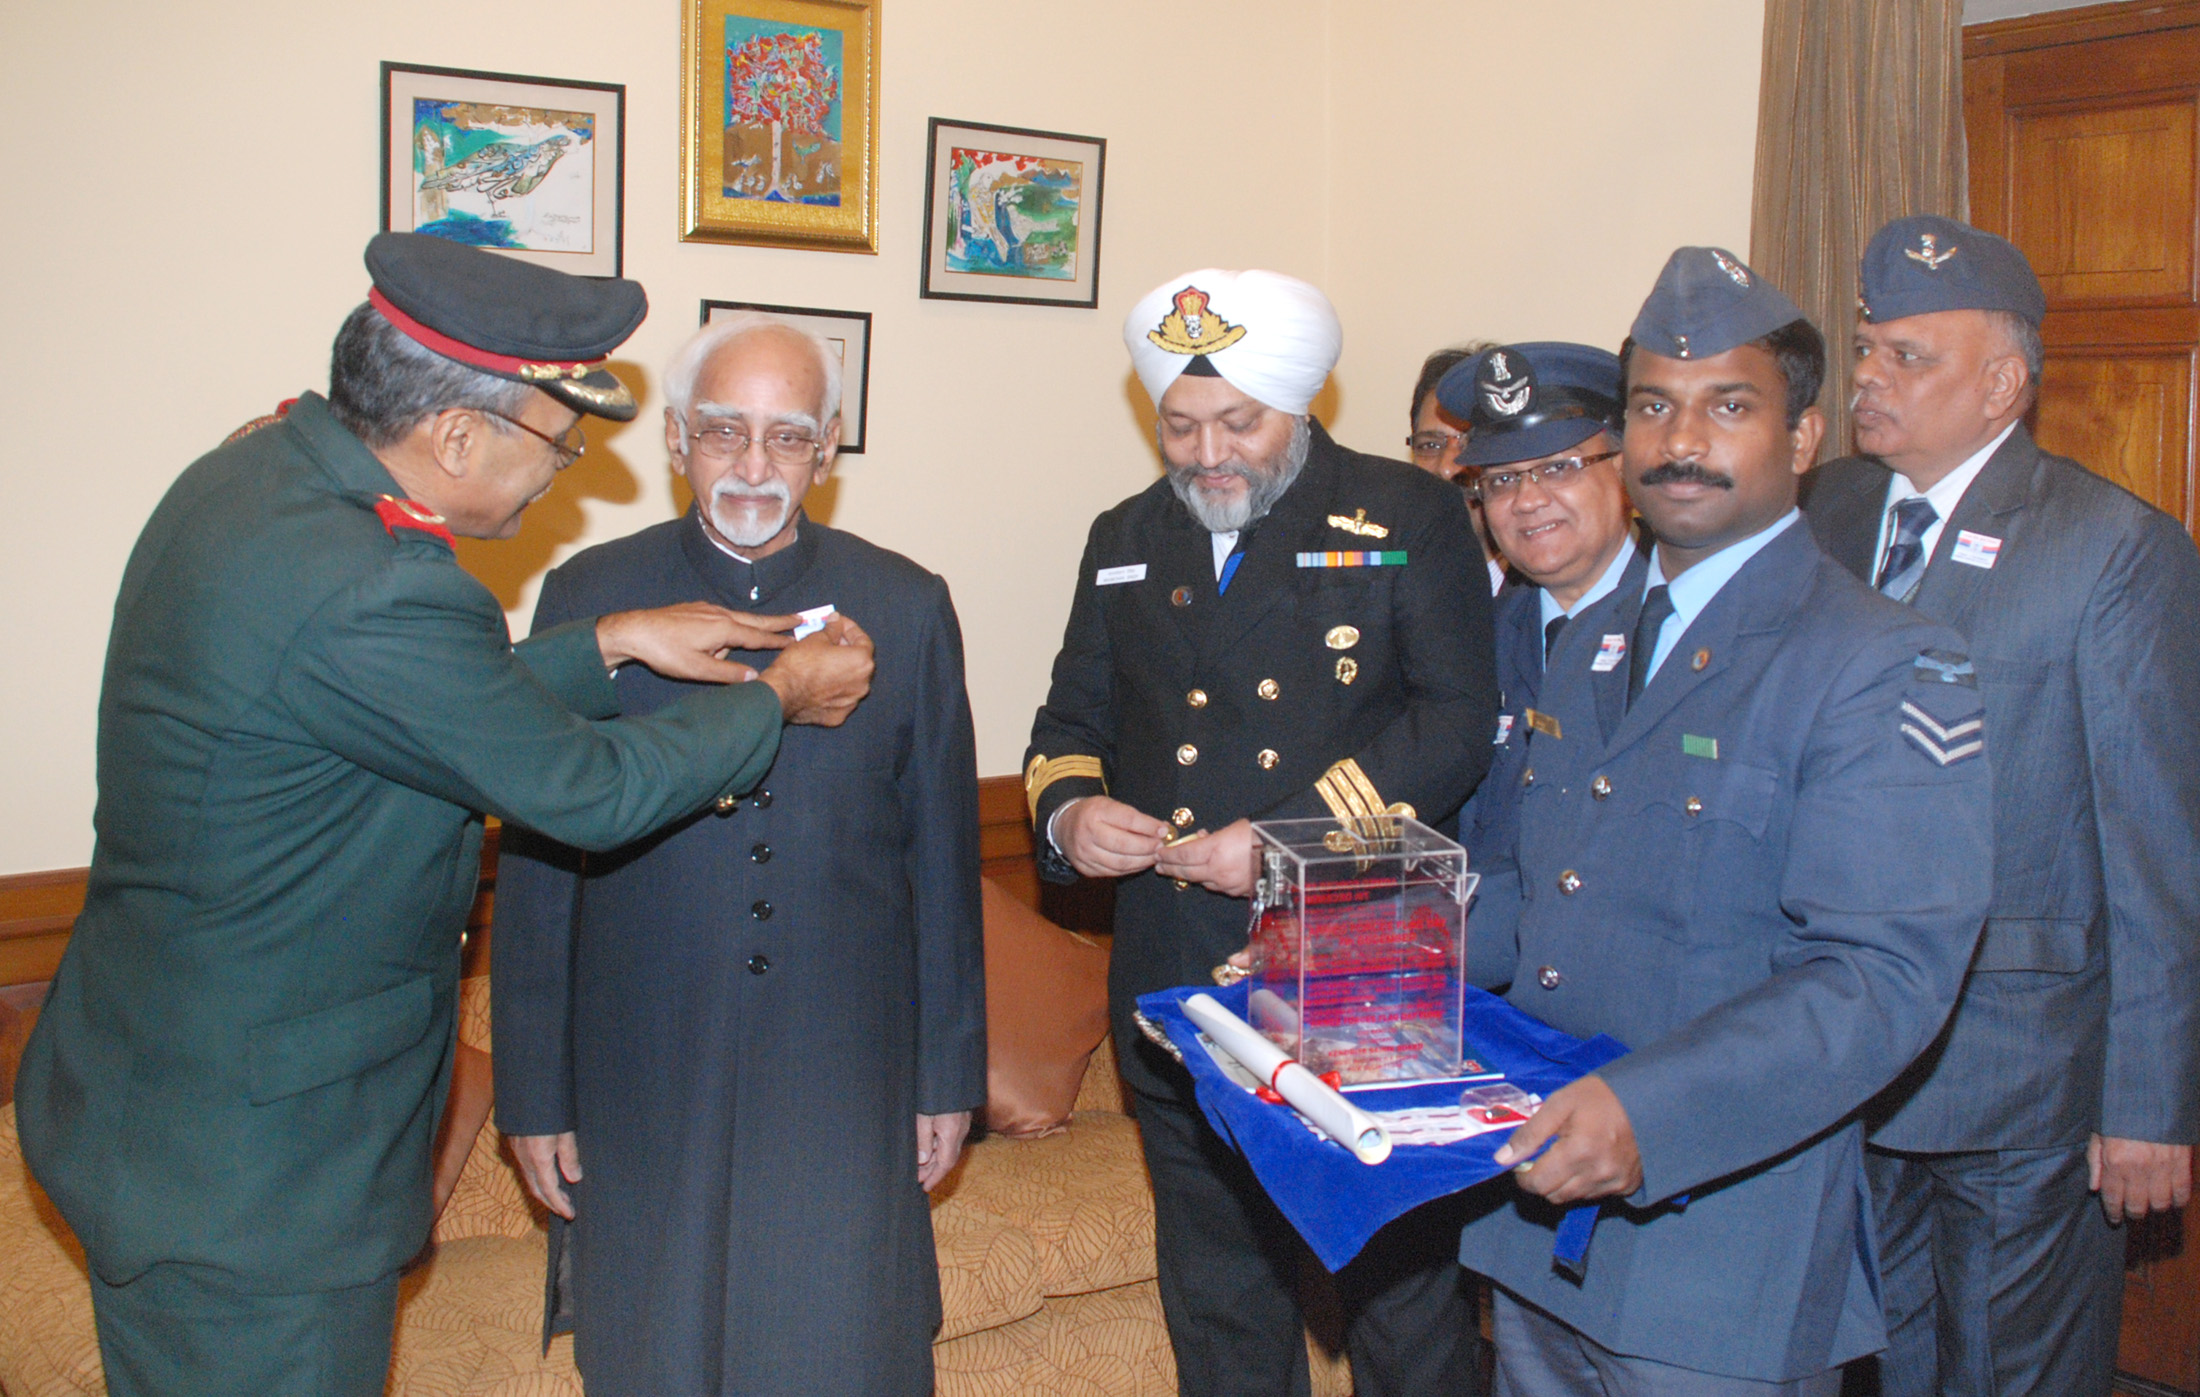 The Vice President, Shri M. Hamid Ansari being presented with the 'Flag Sticker', on the occasion of the Armed Forces Flag Day, in New Delhi on December 07, 2016